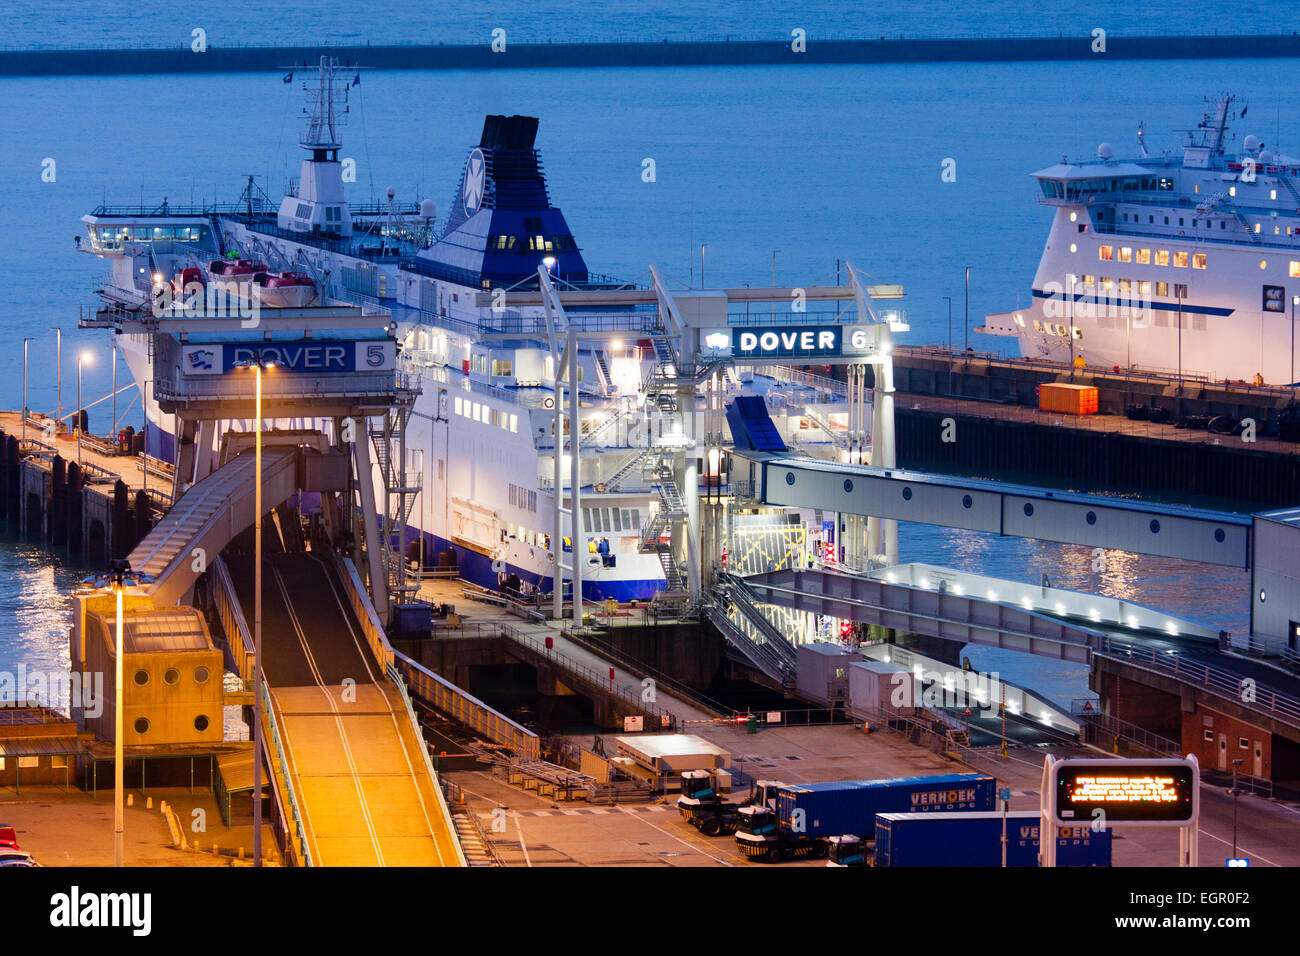 England, Dover. Docks, harbour. Night-time. Car ferry, stern facing, berthed at embarkation point 6. - Stock Image